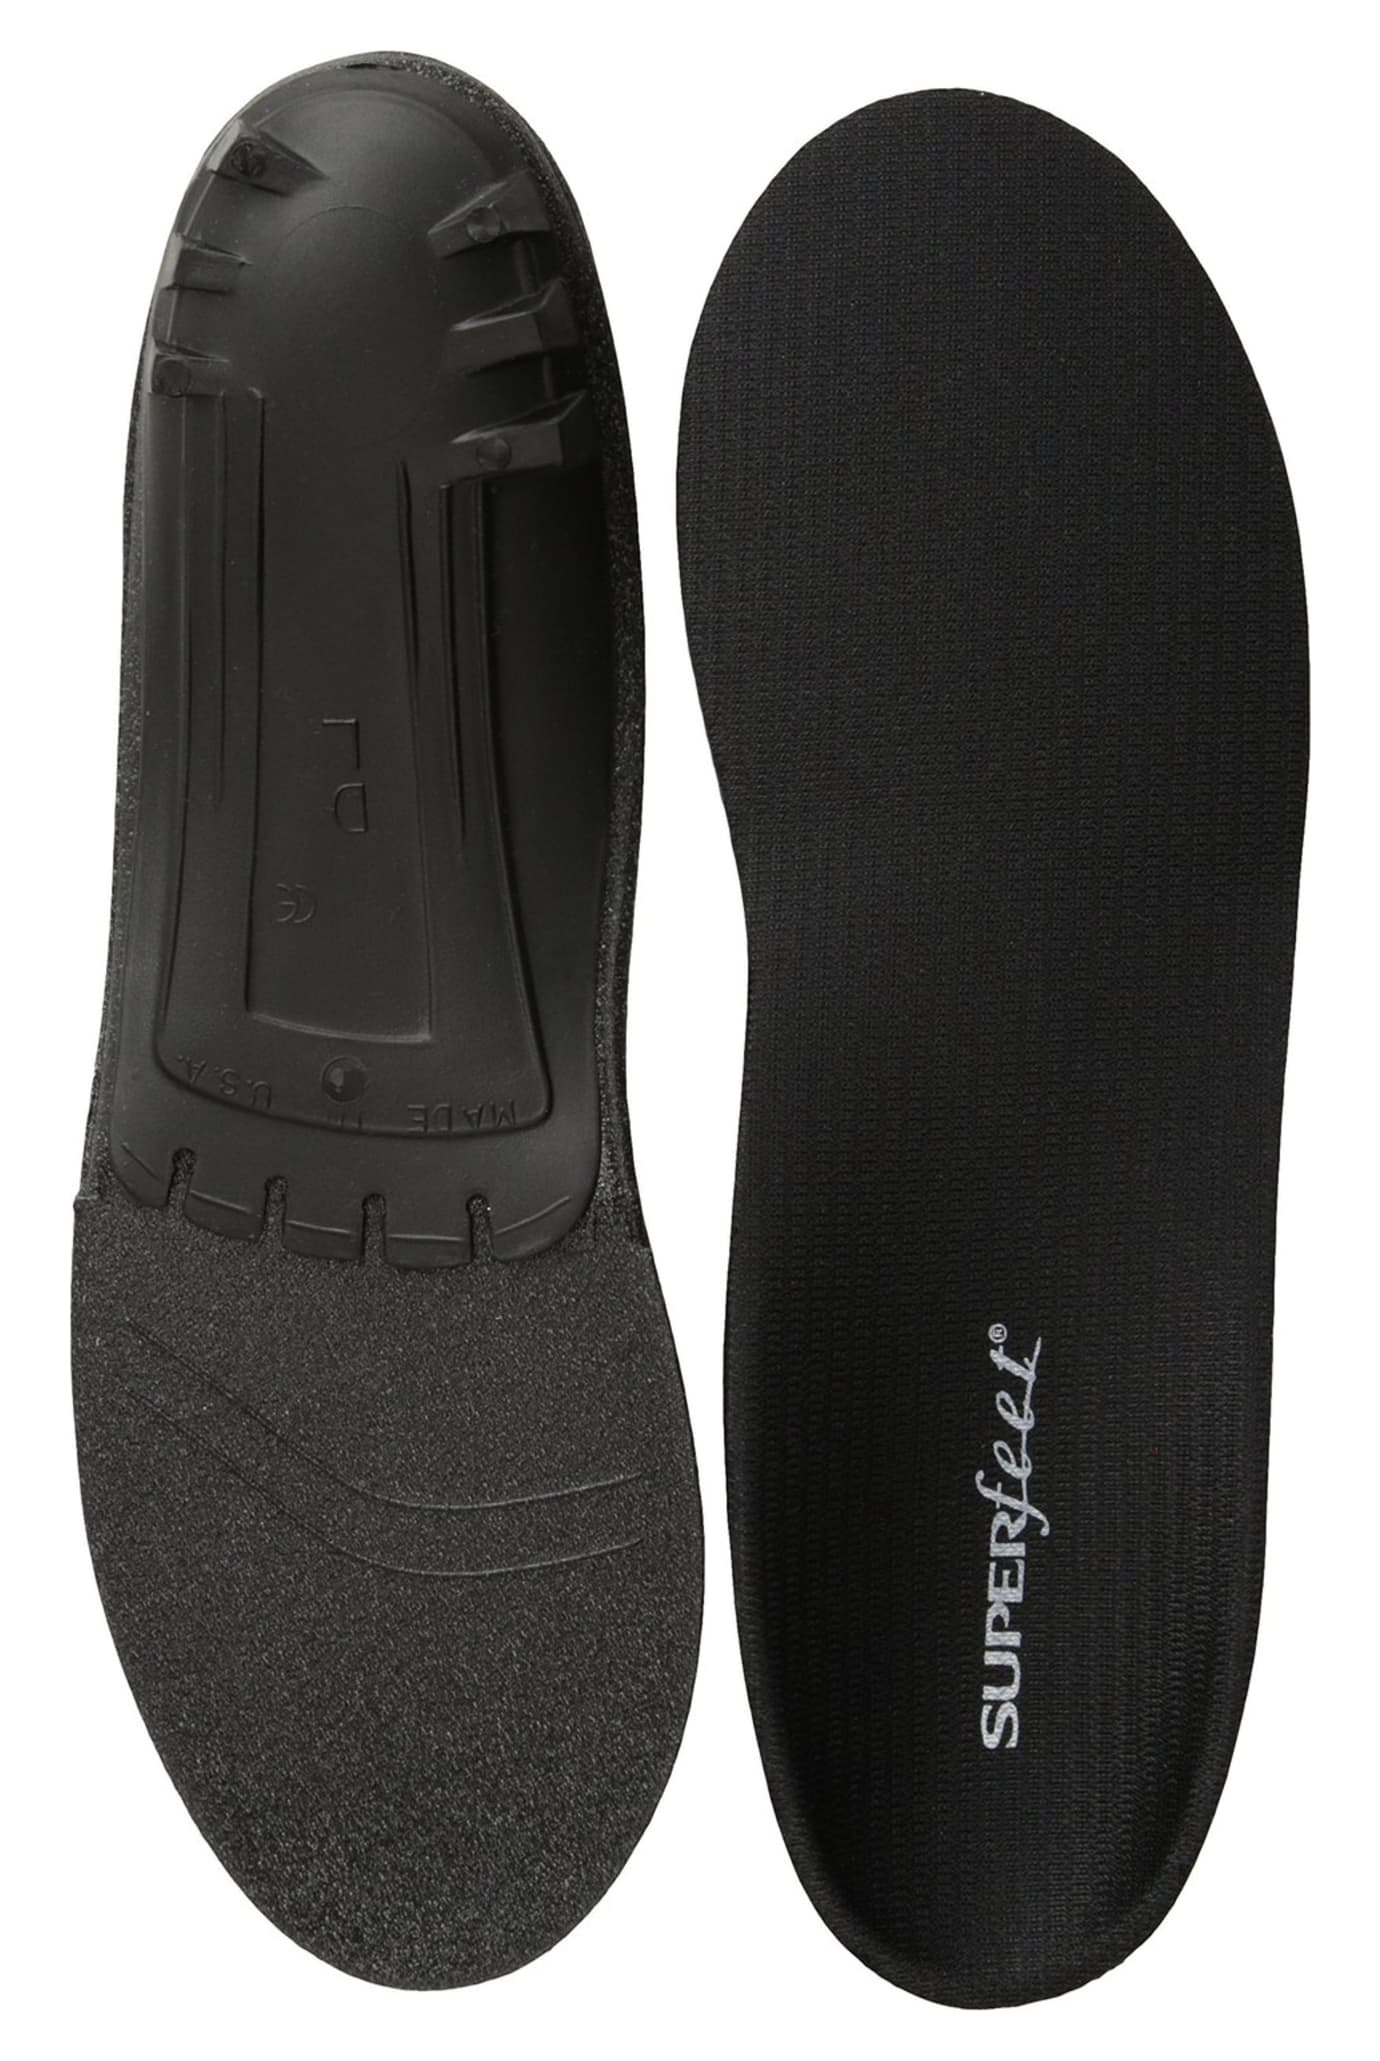 Thin Insoles For Dress Shoes Canada